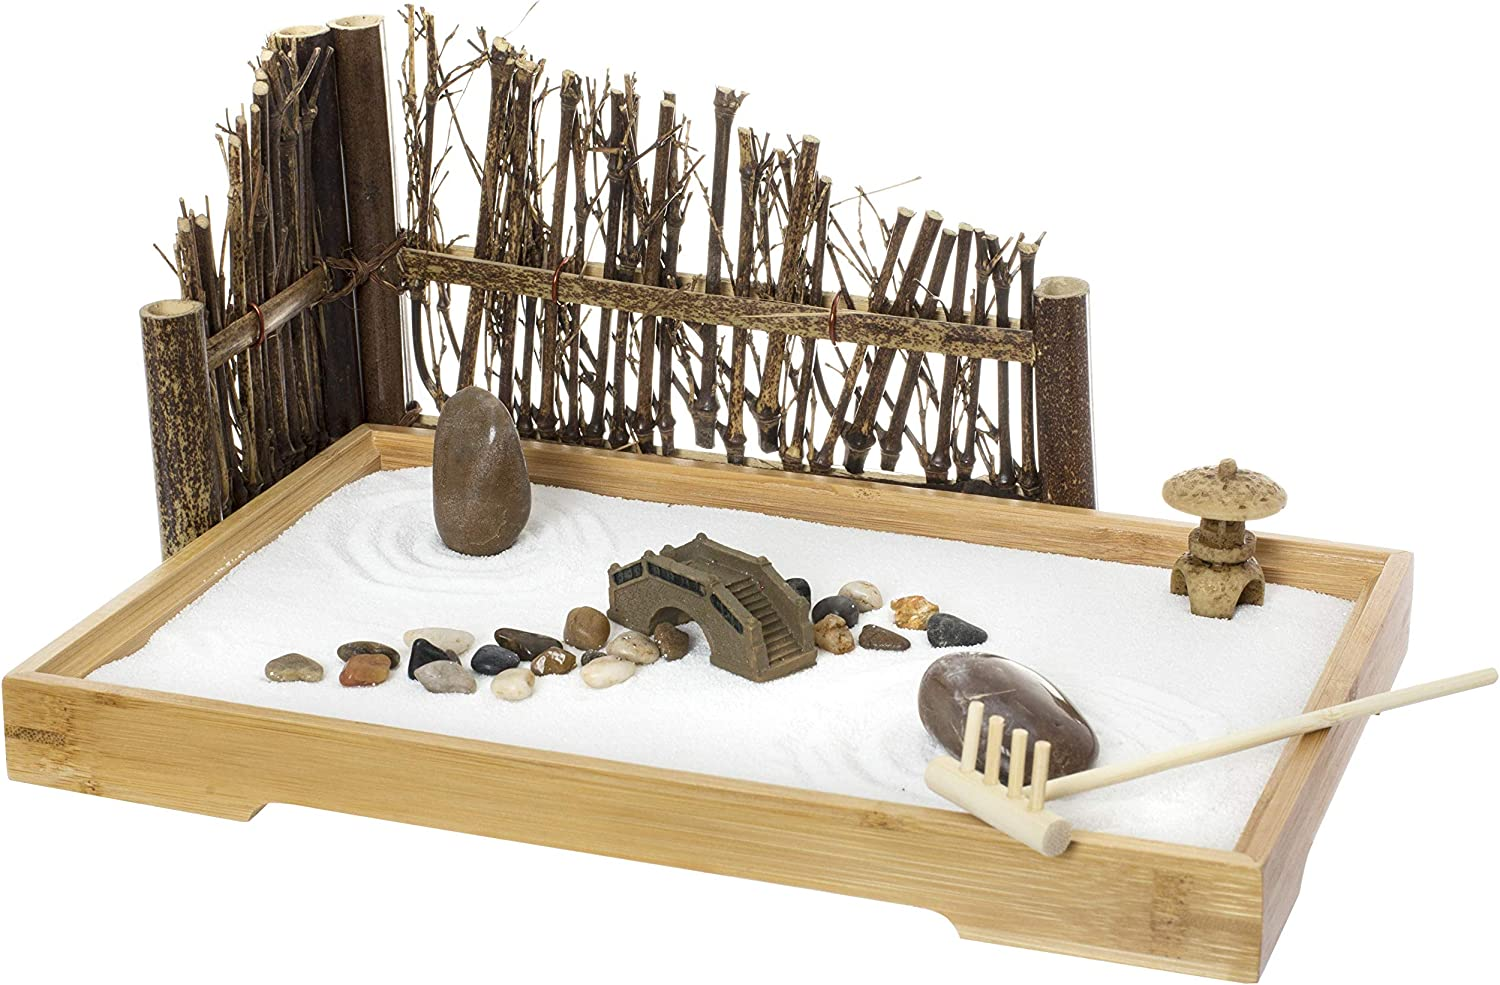 Japanese Zen Garden for Desk - Bamboo Tray, White Sand, River Rocks, Pebbles, Rake Tools Set - Office Table Accessories, Home Decor, Toy Garden Kit - Meditation and Stress Relief - 11x7.5 Inches